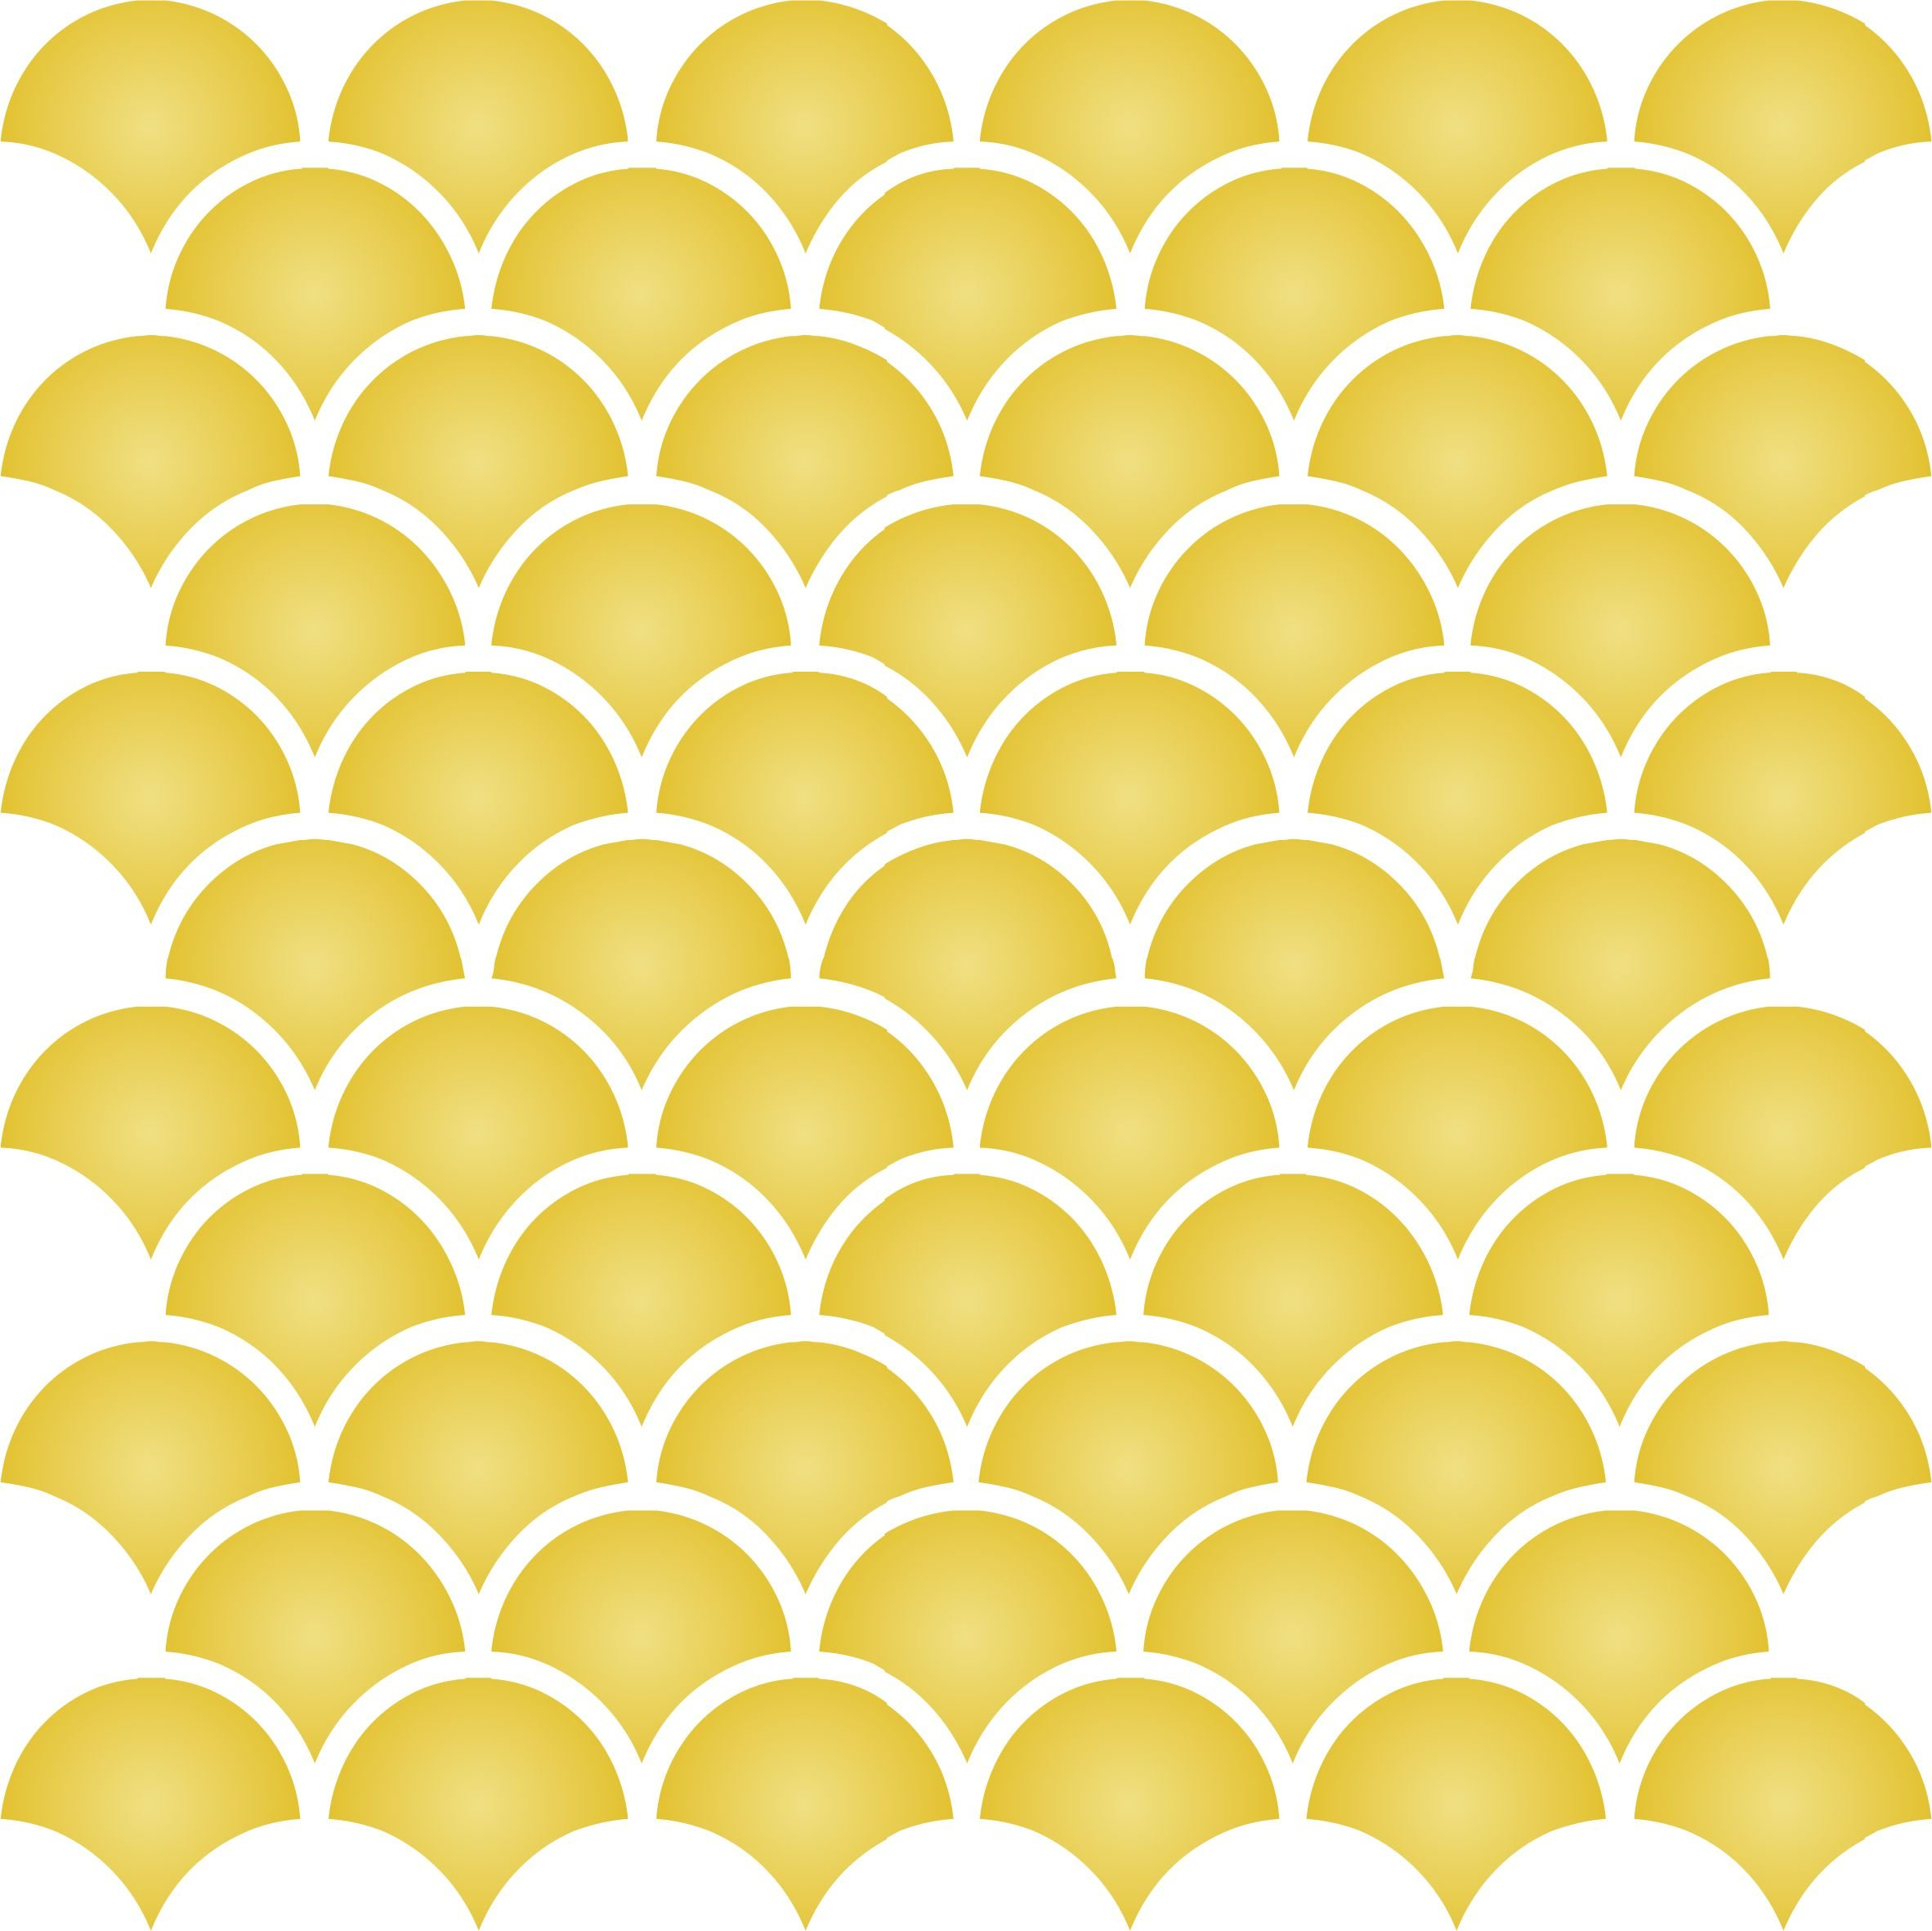 2'' Fish Scale Trellis Stencil - 14 x 14 inch (L) - Reusable Template Allover Wallpaper Wall Stencils for Painting - Use on Walls, Floors, Fabrics, Glass, Wood, and More...